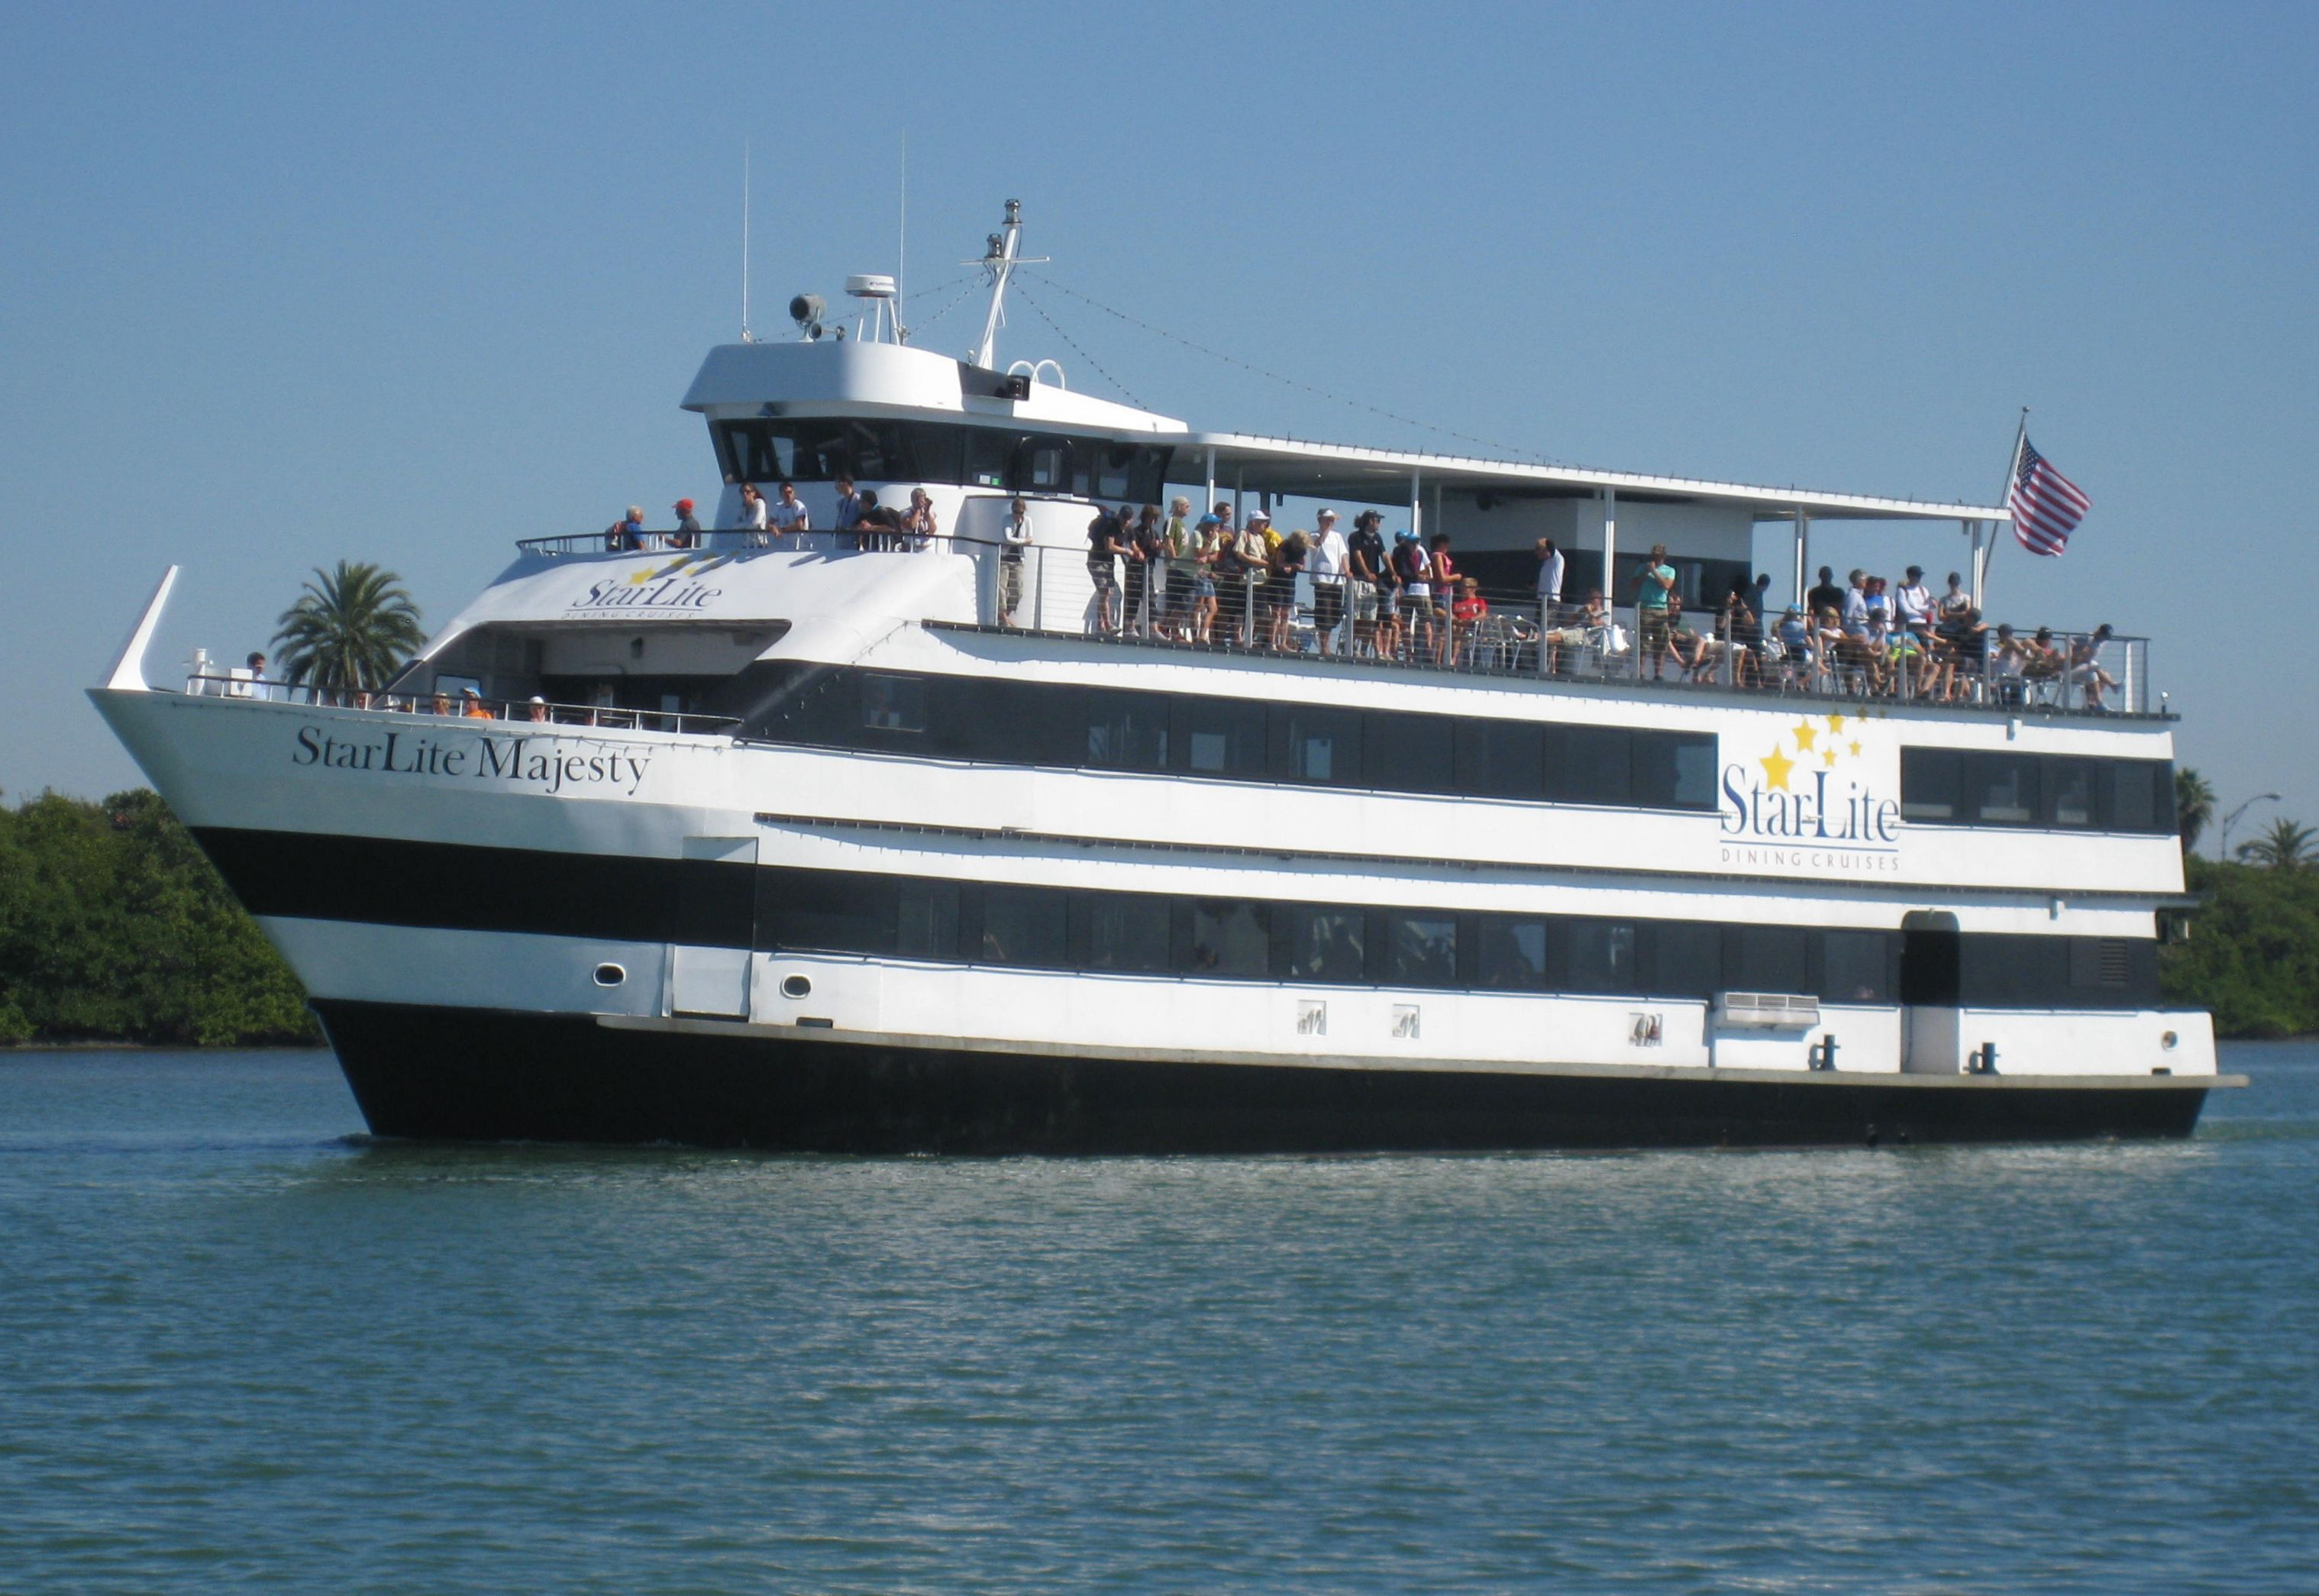 The Starlite Majesty offers luncheon and dinner cruises